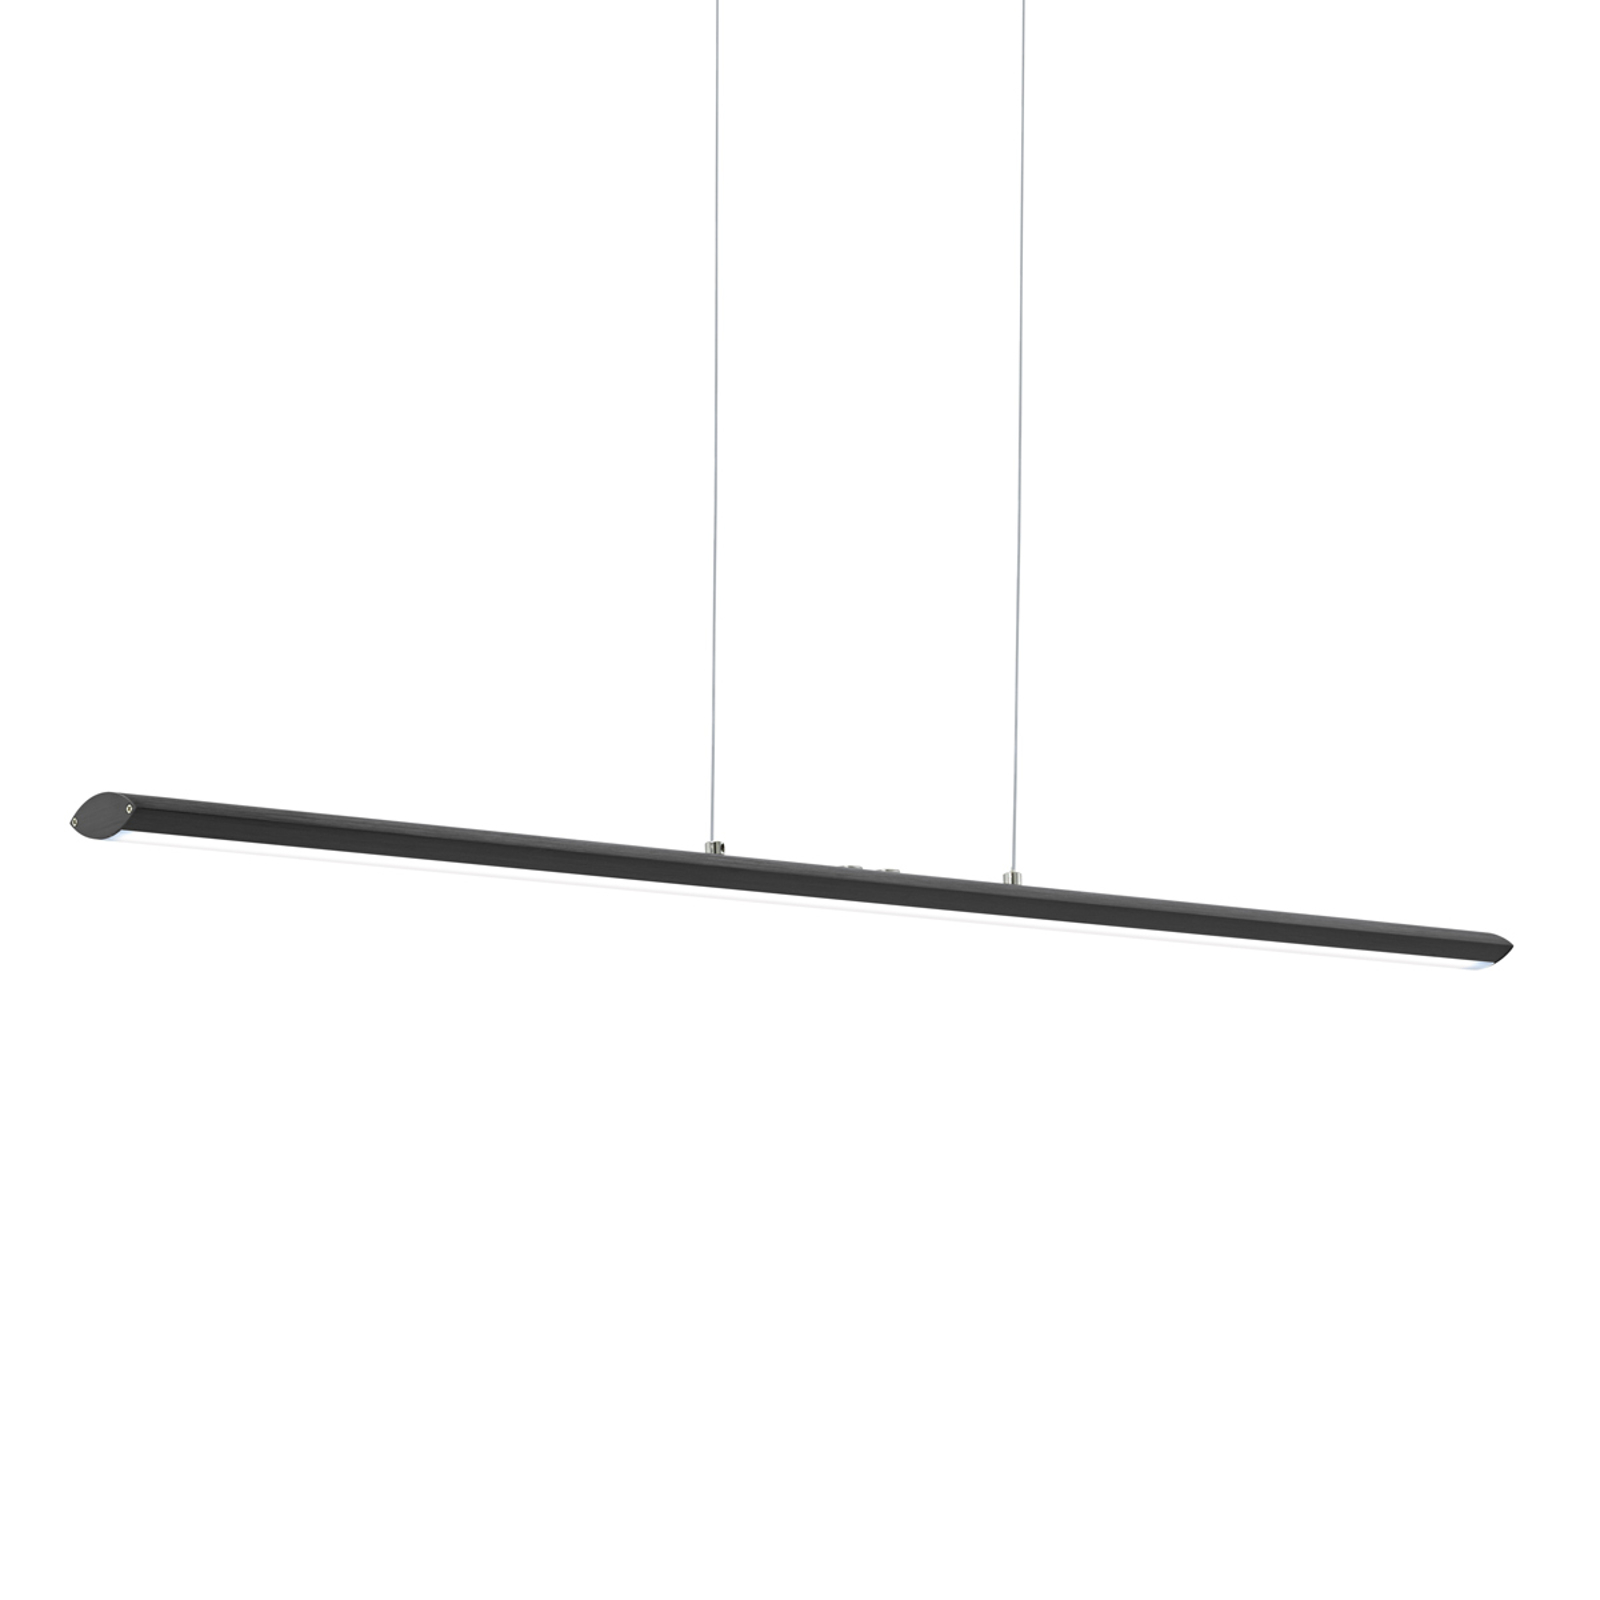 Suspension LED noire Pellaro, dimmable